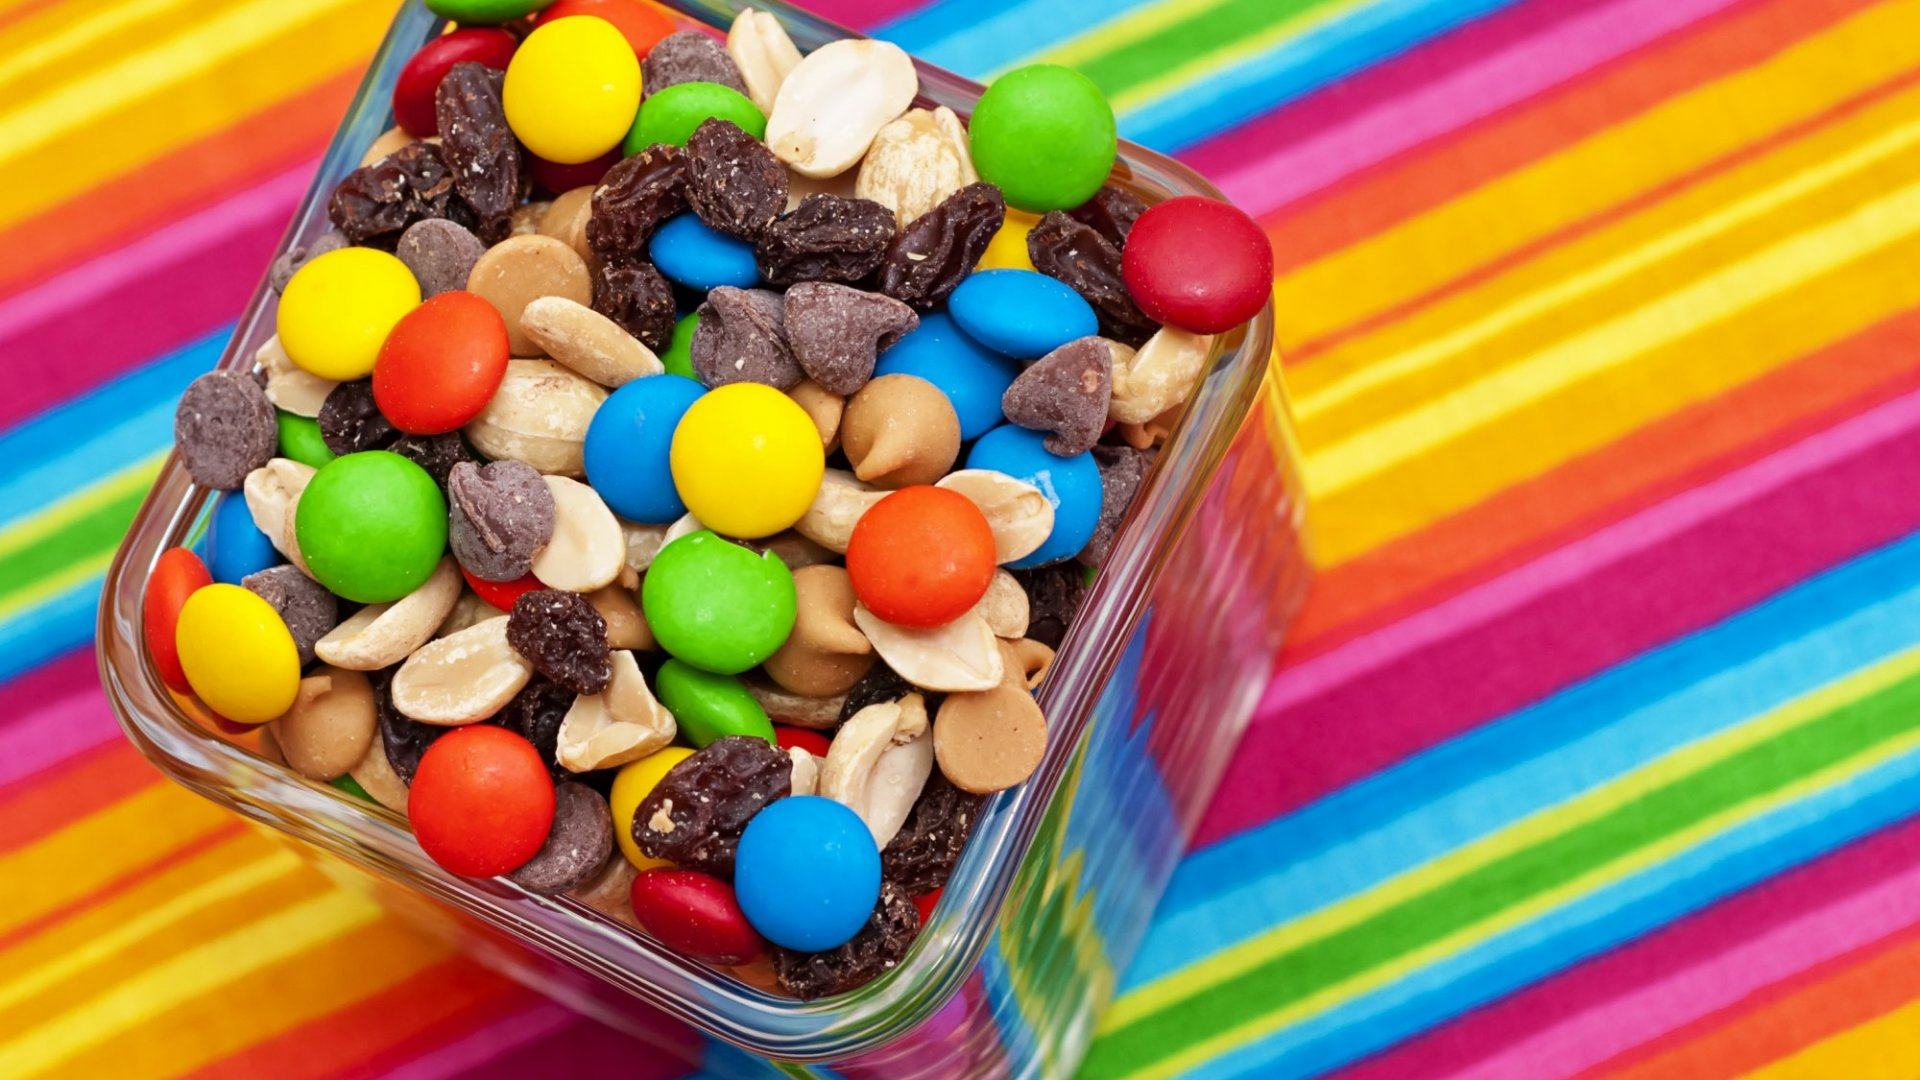 Four Ways Hiring is Like Making Trail Mix